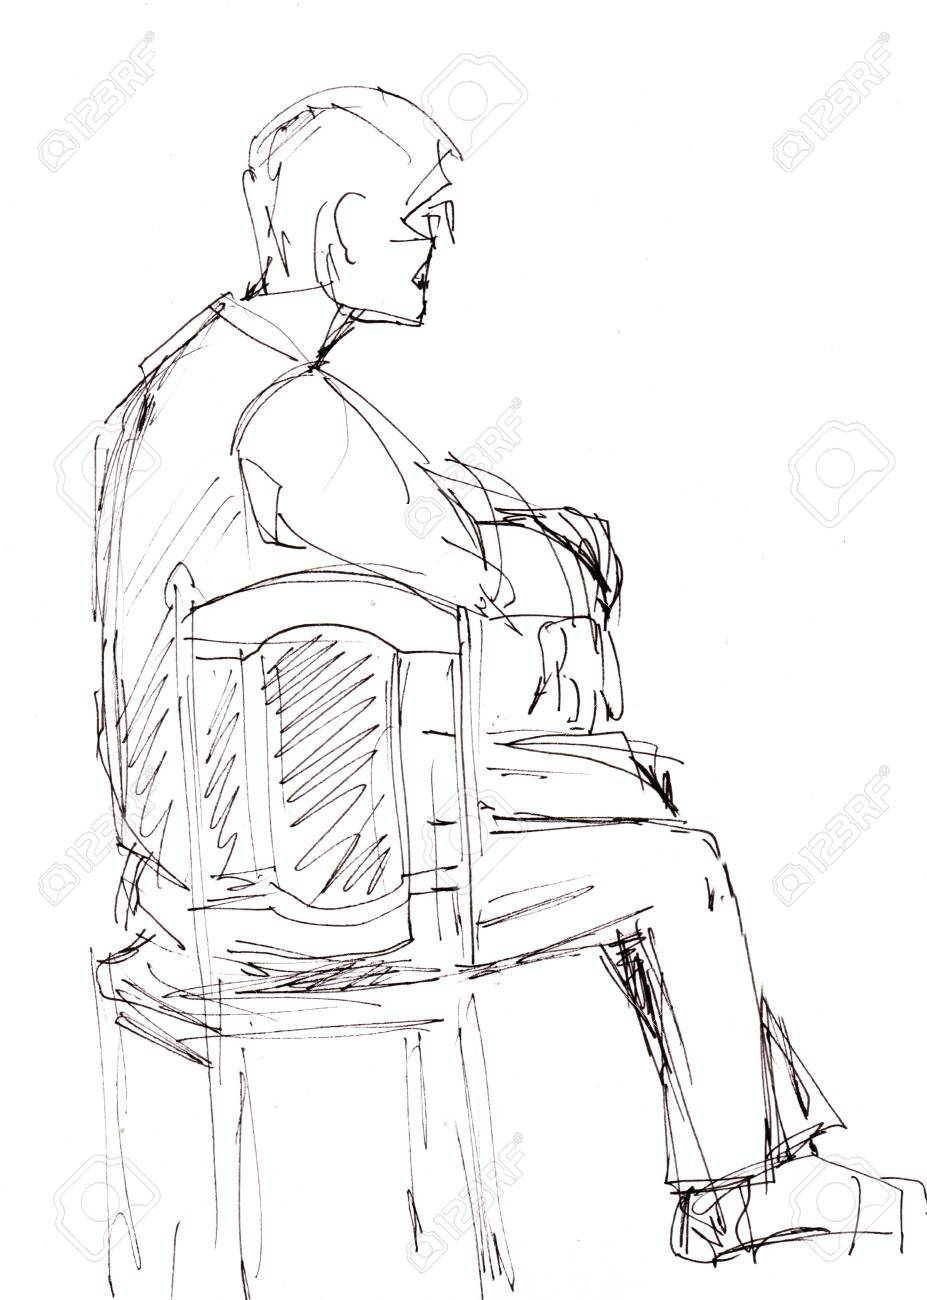 Instant sketch man sitting on chair stock photo 83437487